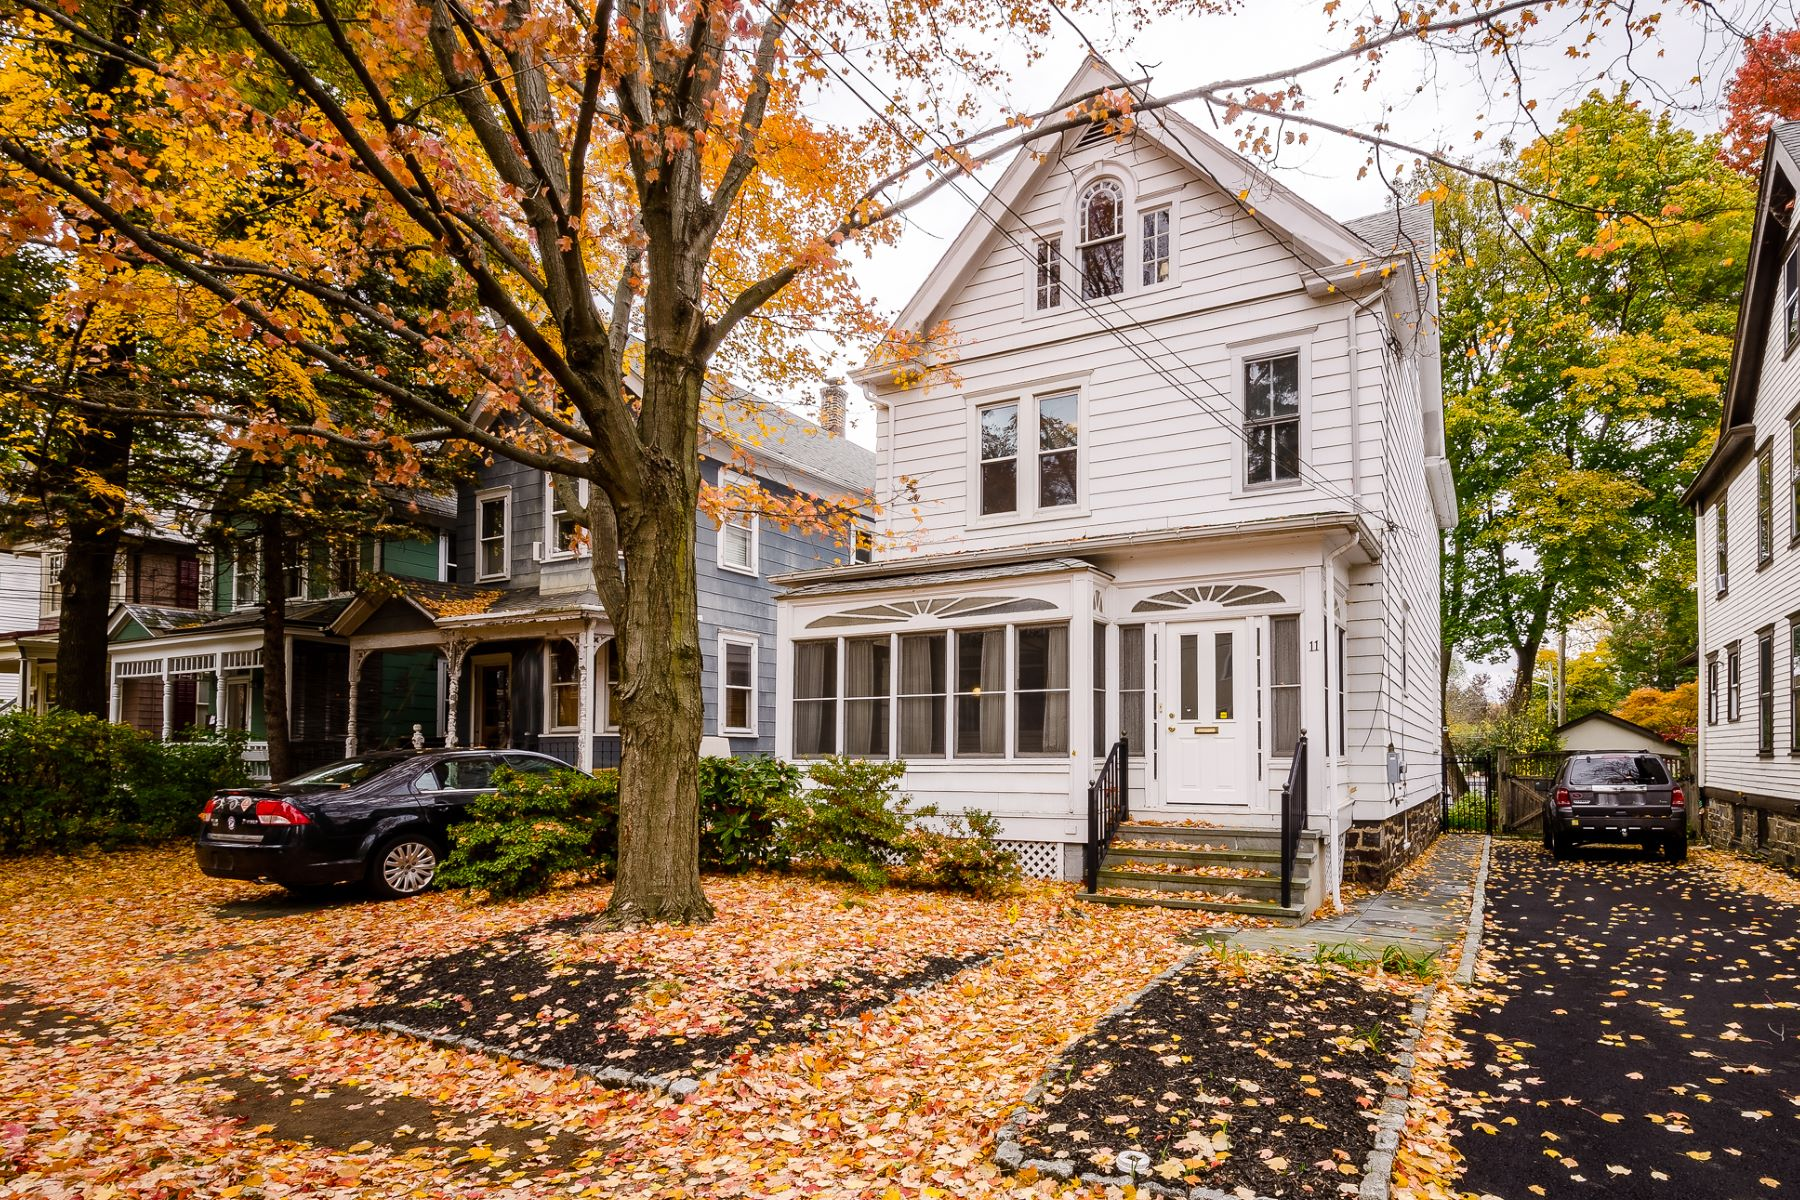 Property for Sale at The Quintessential Downtown Location 11 Madison Street, Princeton, New Jersey 08542 United States